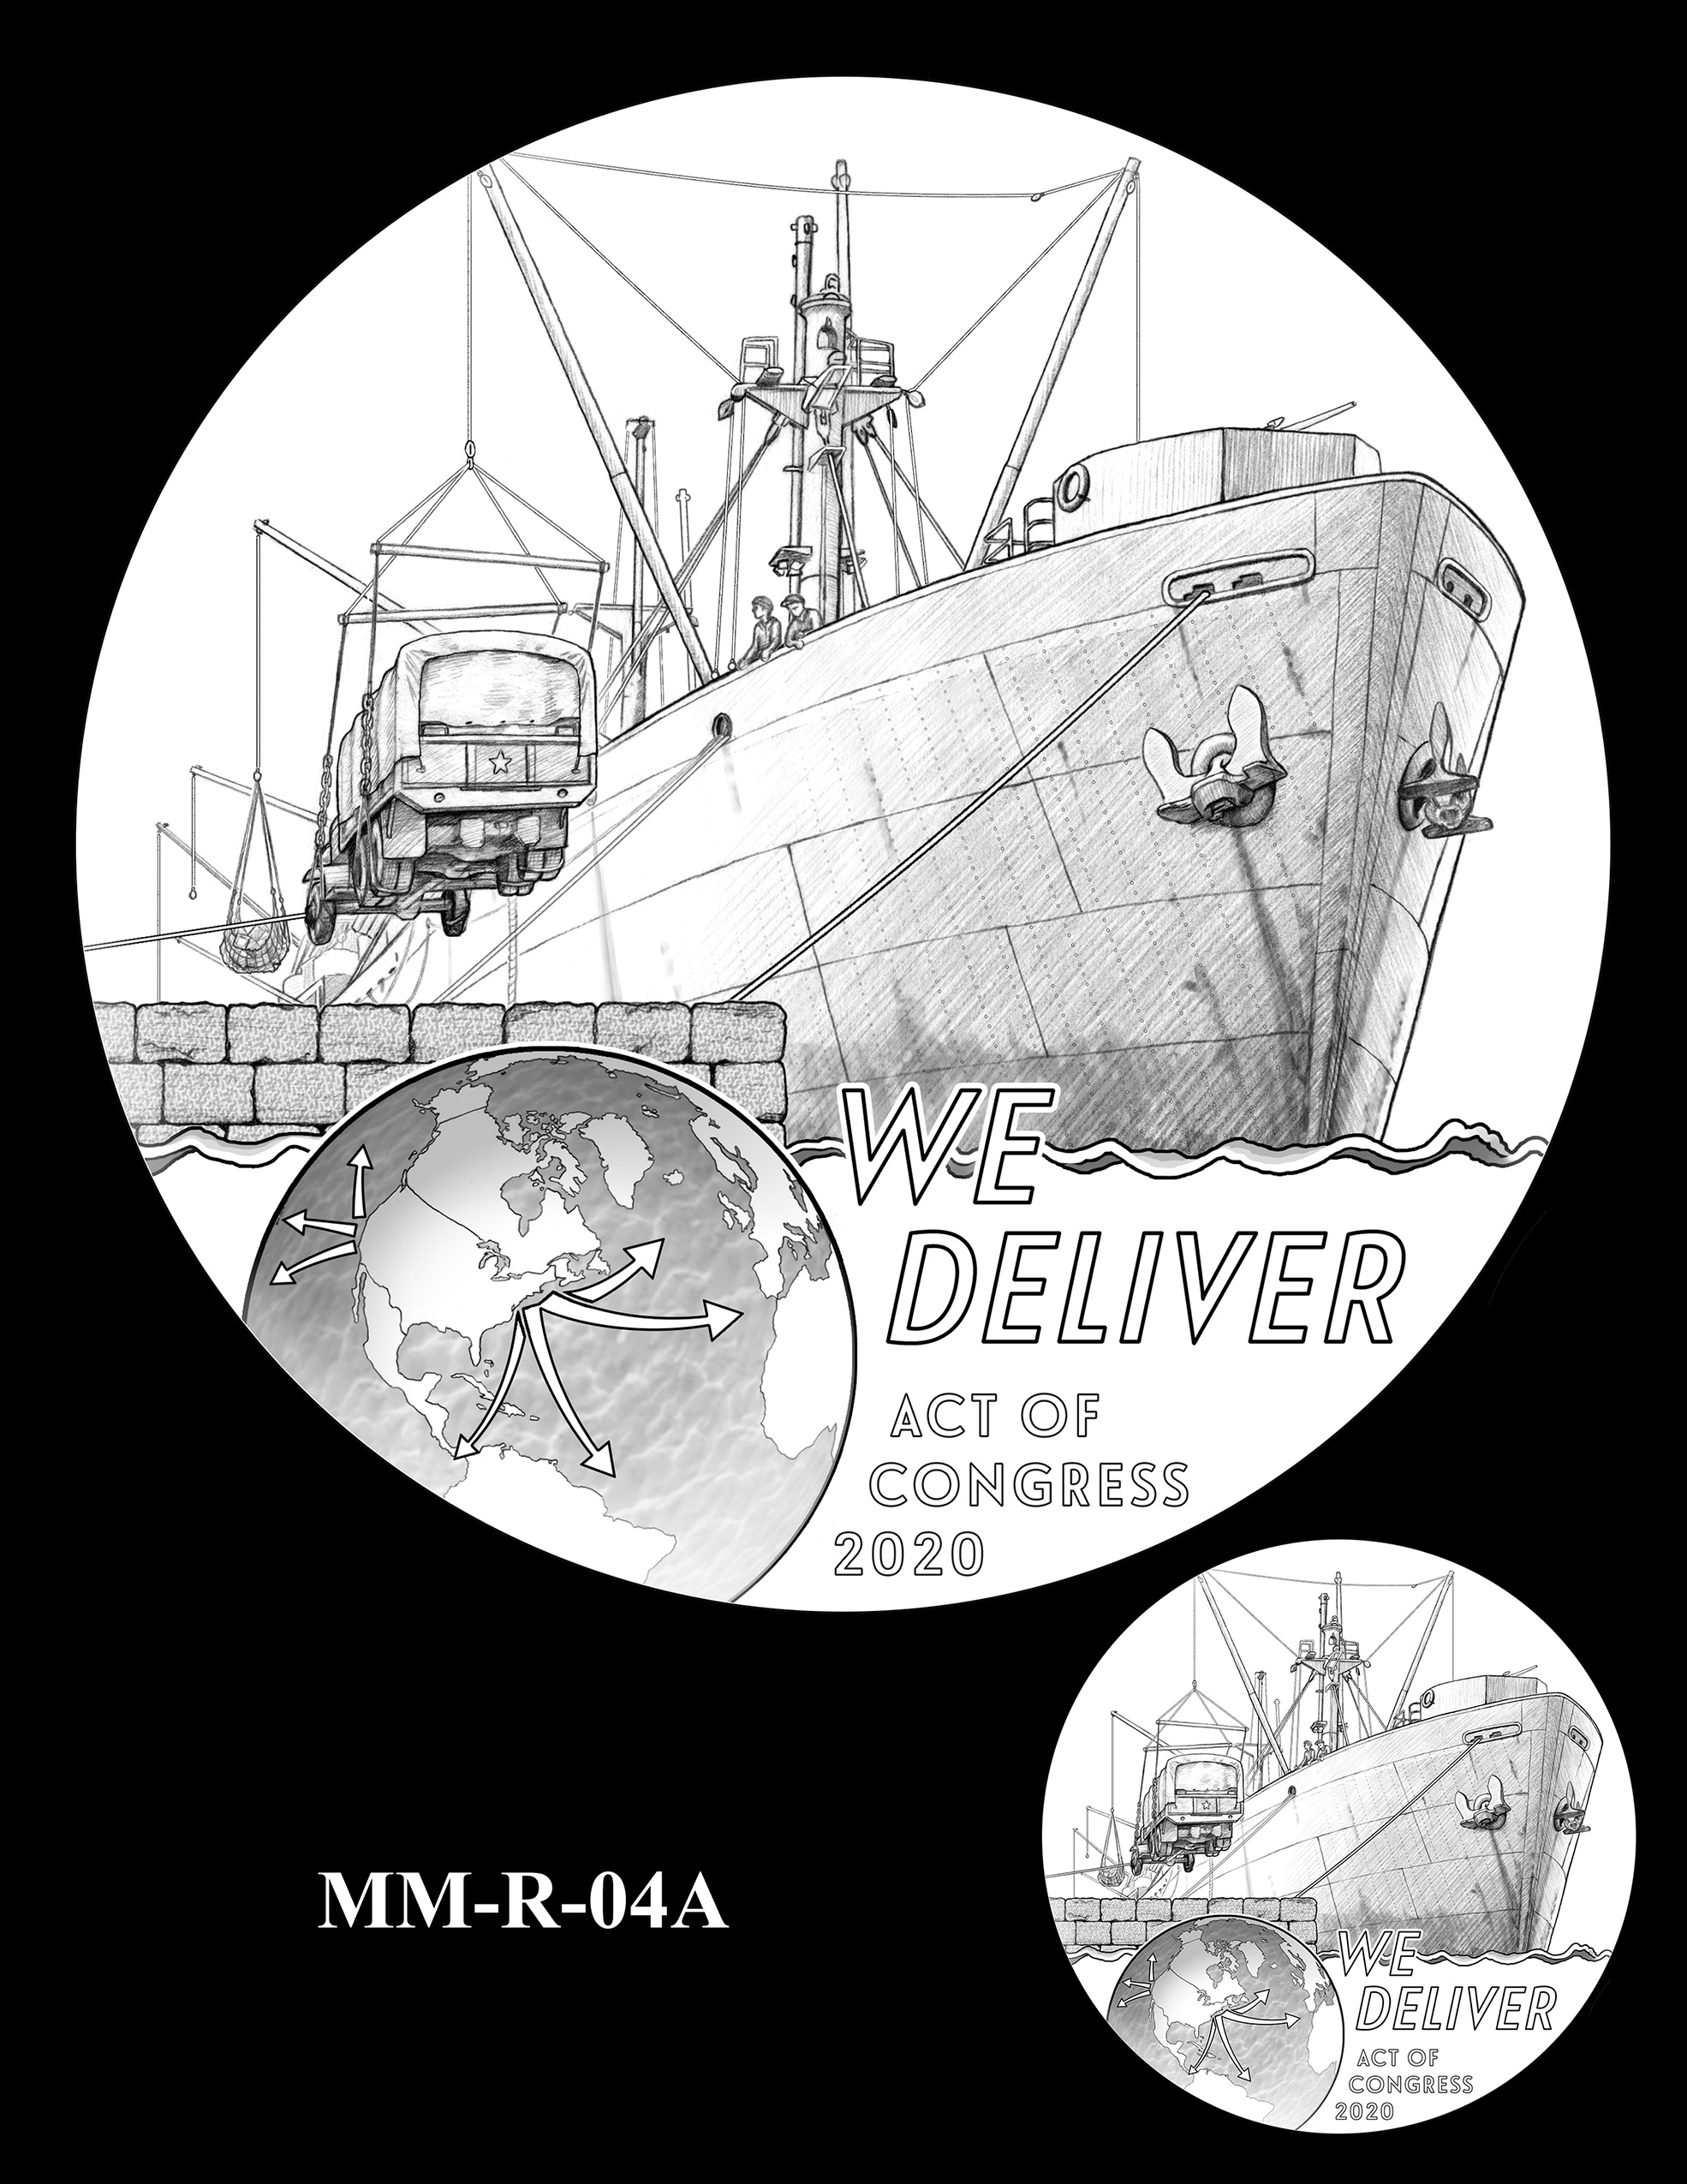 MM-R-04A -- Merchant Mariners of World War II Congressional Gold Medal